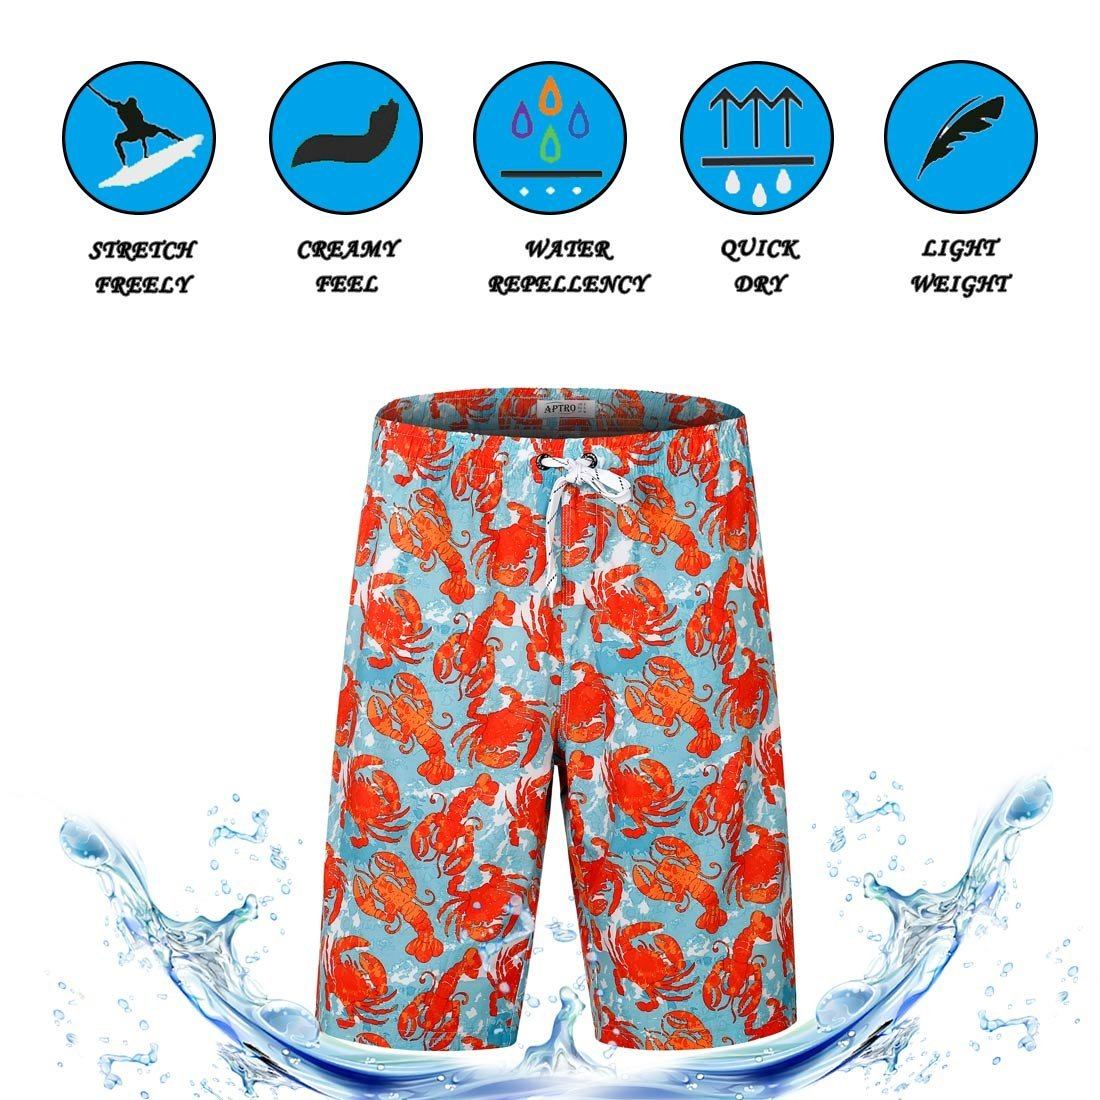 APTRO Men's Swim Trunks Crab Printing Bathing Suit #HW016 XXL by APTRO (Image #6)